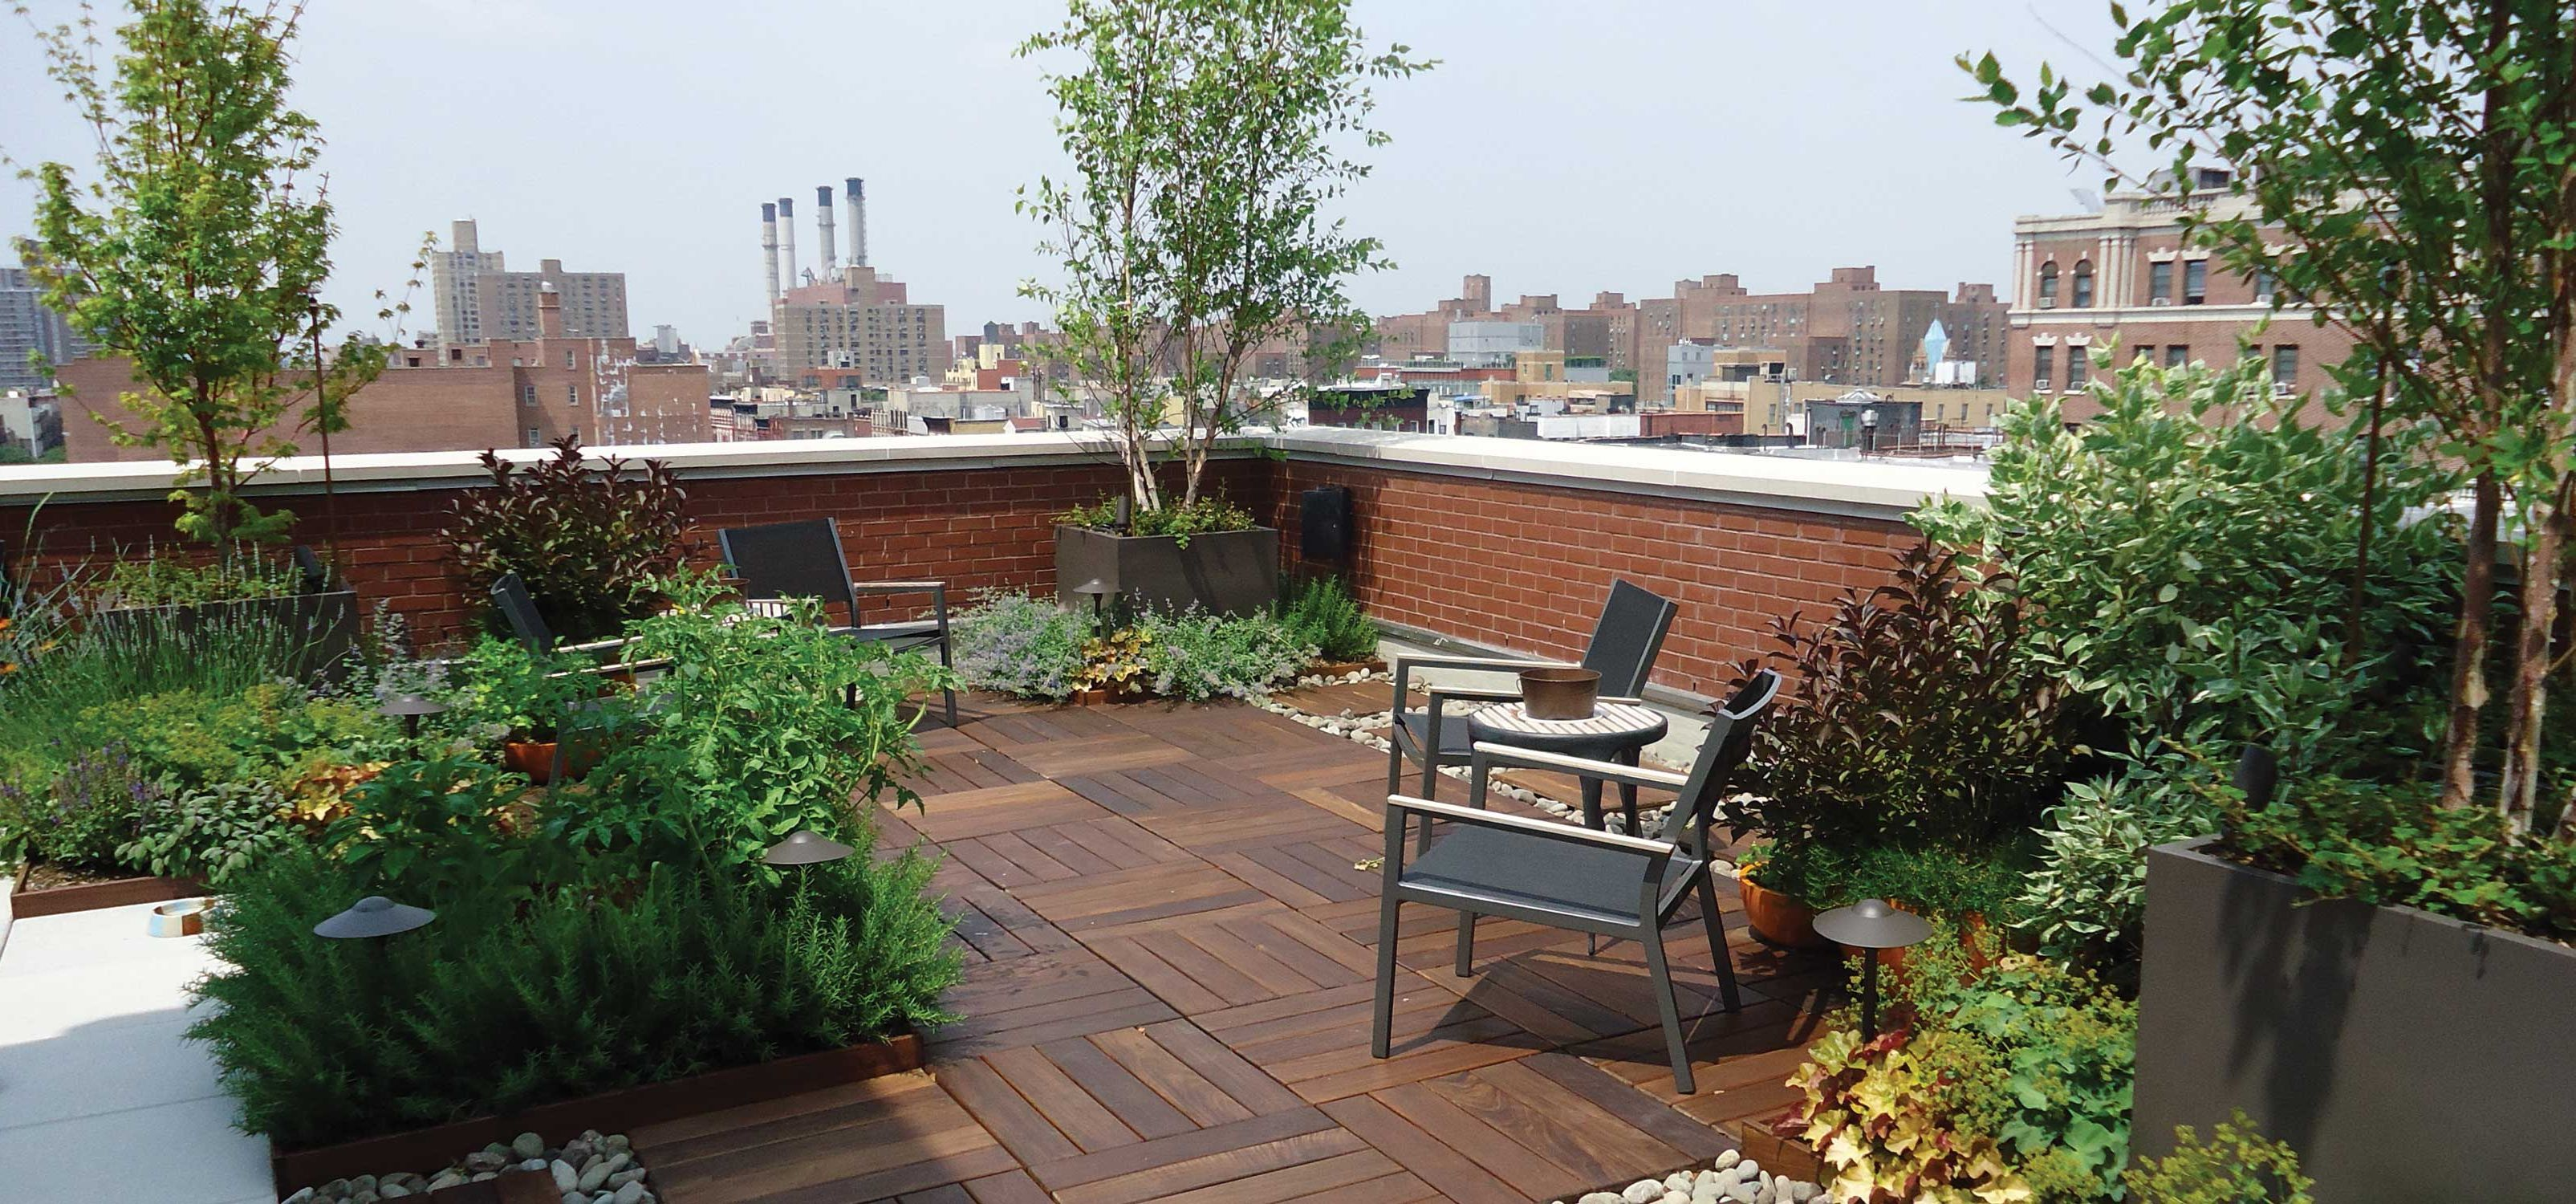 Outdoor beautiful cozy terrace garden picture interesting rooftop terrace garden design - Garden design terraced house ...